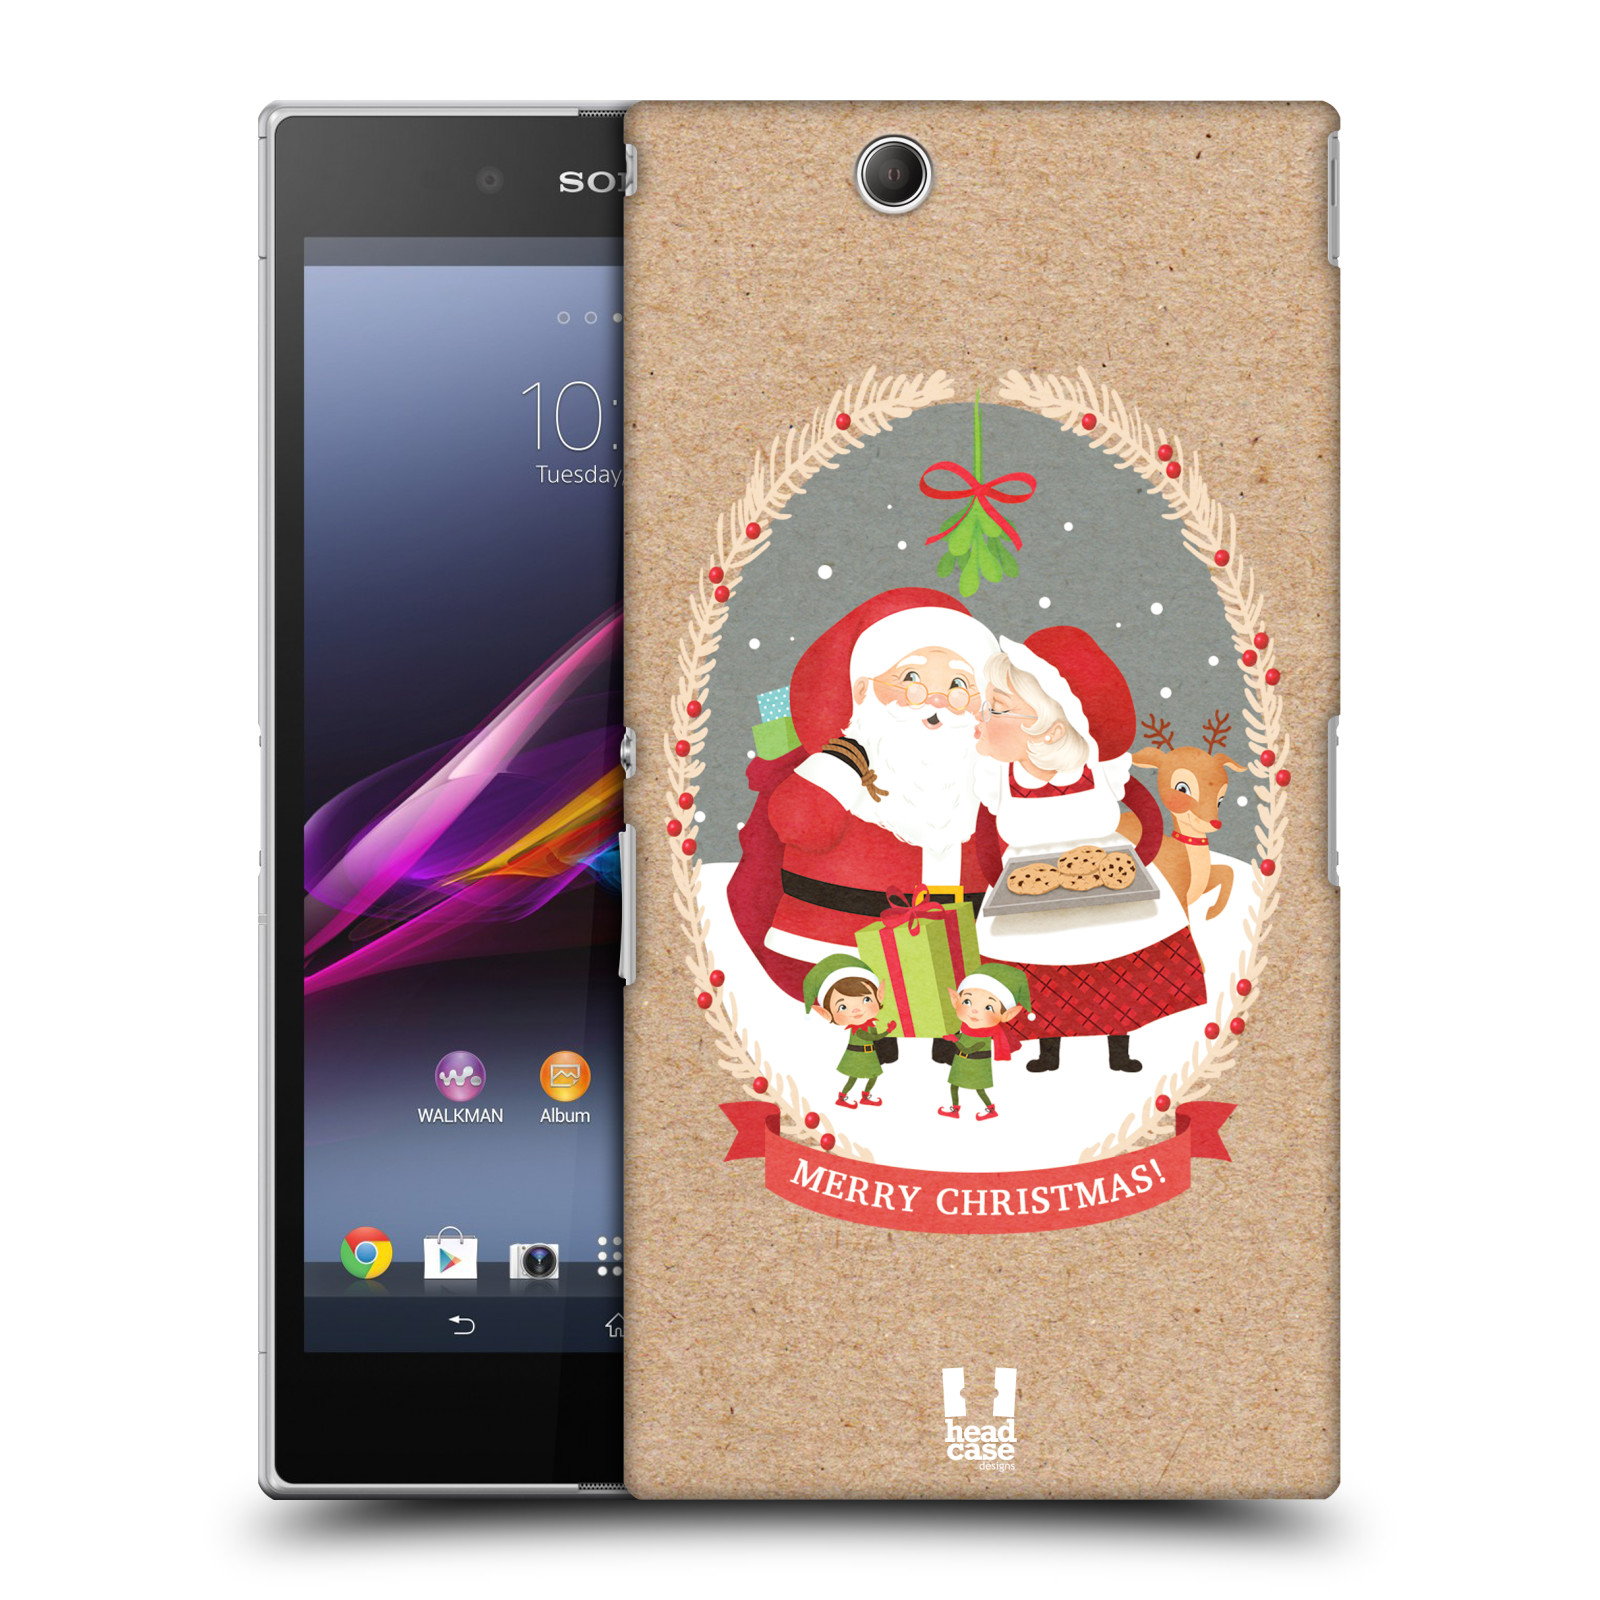 HEAD CASE DESIGNS CHRISTMAS CLASSICS 2 CASE COVER FOR SONY XPERIA Z ULTRA C6802